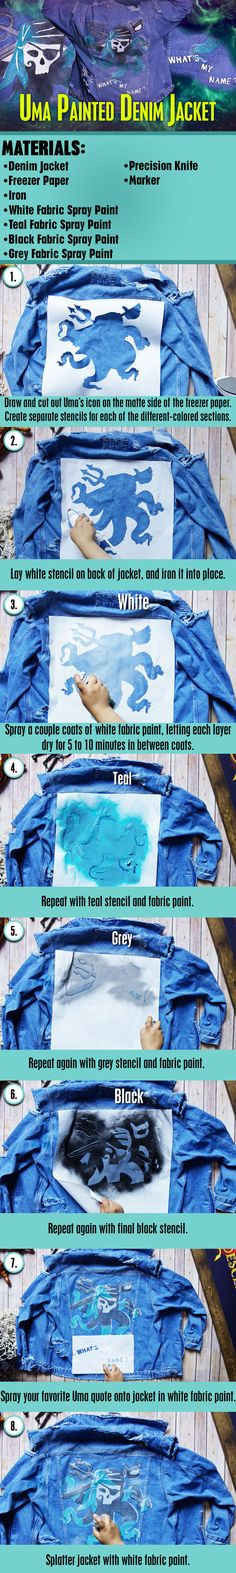 Descendants 2 - Uma Painted Denim Jacket DIY | Ride with the Tide, and create your own Uma-inspired denim jacket!